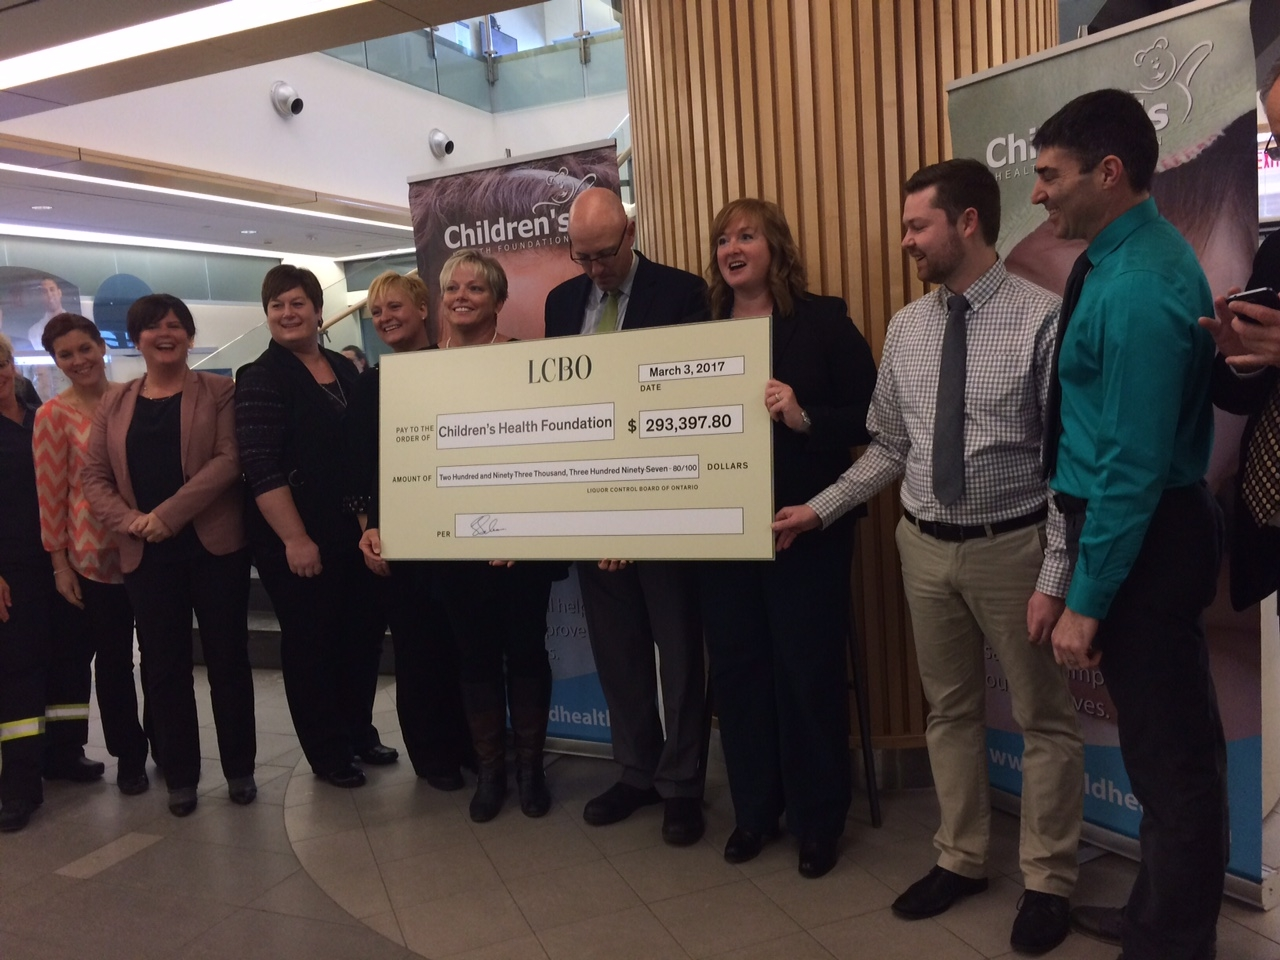 LCBO gives back to London Children's Hospital